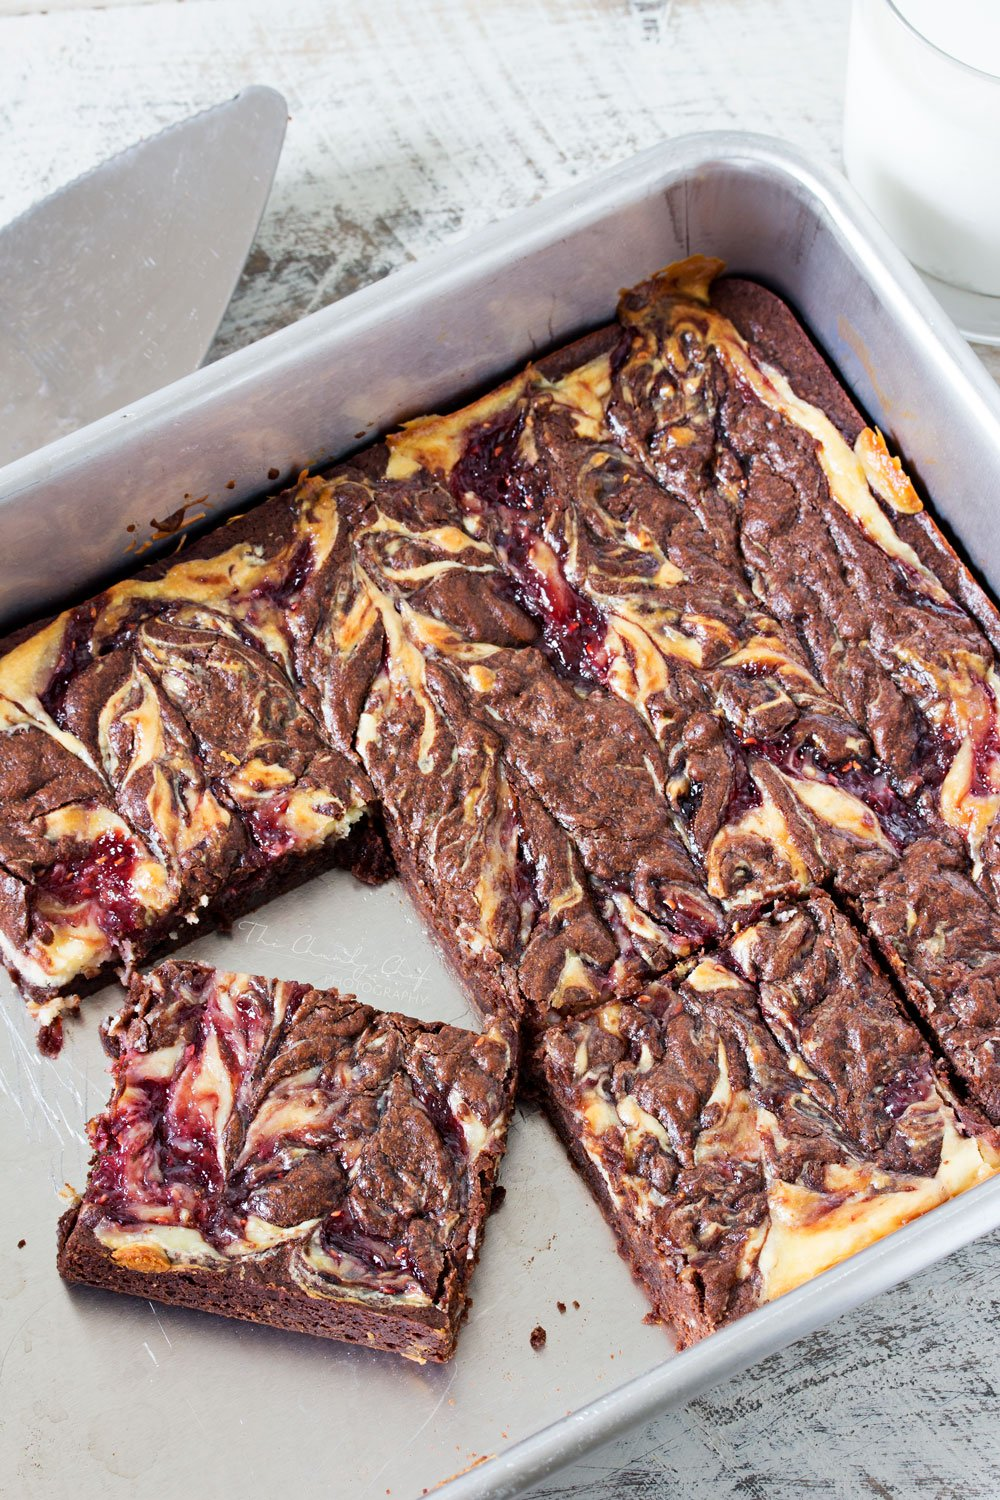 Raspberry Cheesecake Brownies | Rich, fudgy brownies are topped with a creamy cheesecake layer that's been swirled with sweet raspberry jam. The best cheesecake brownies! |http://thechunkychef.com